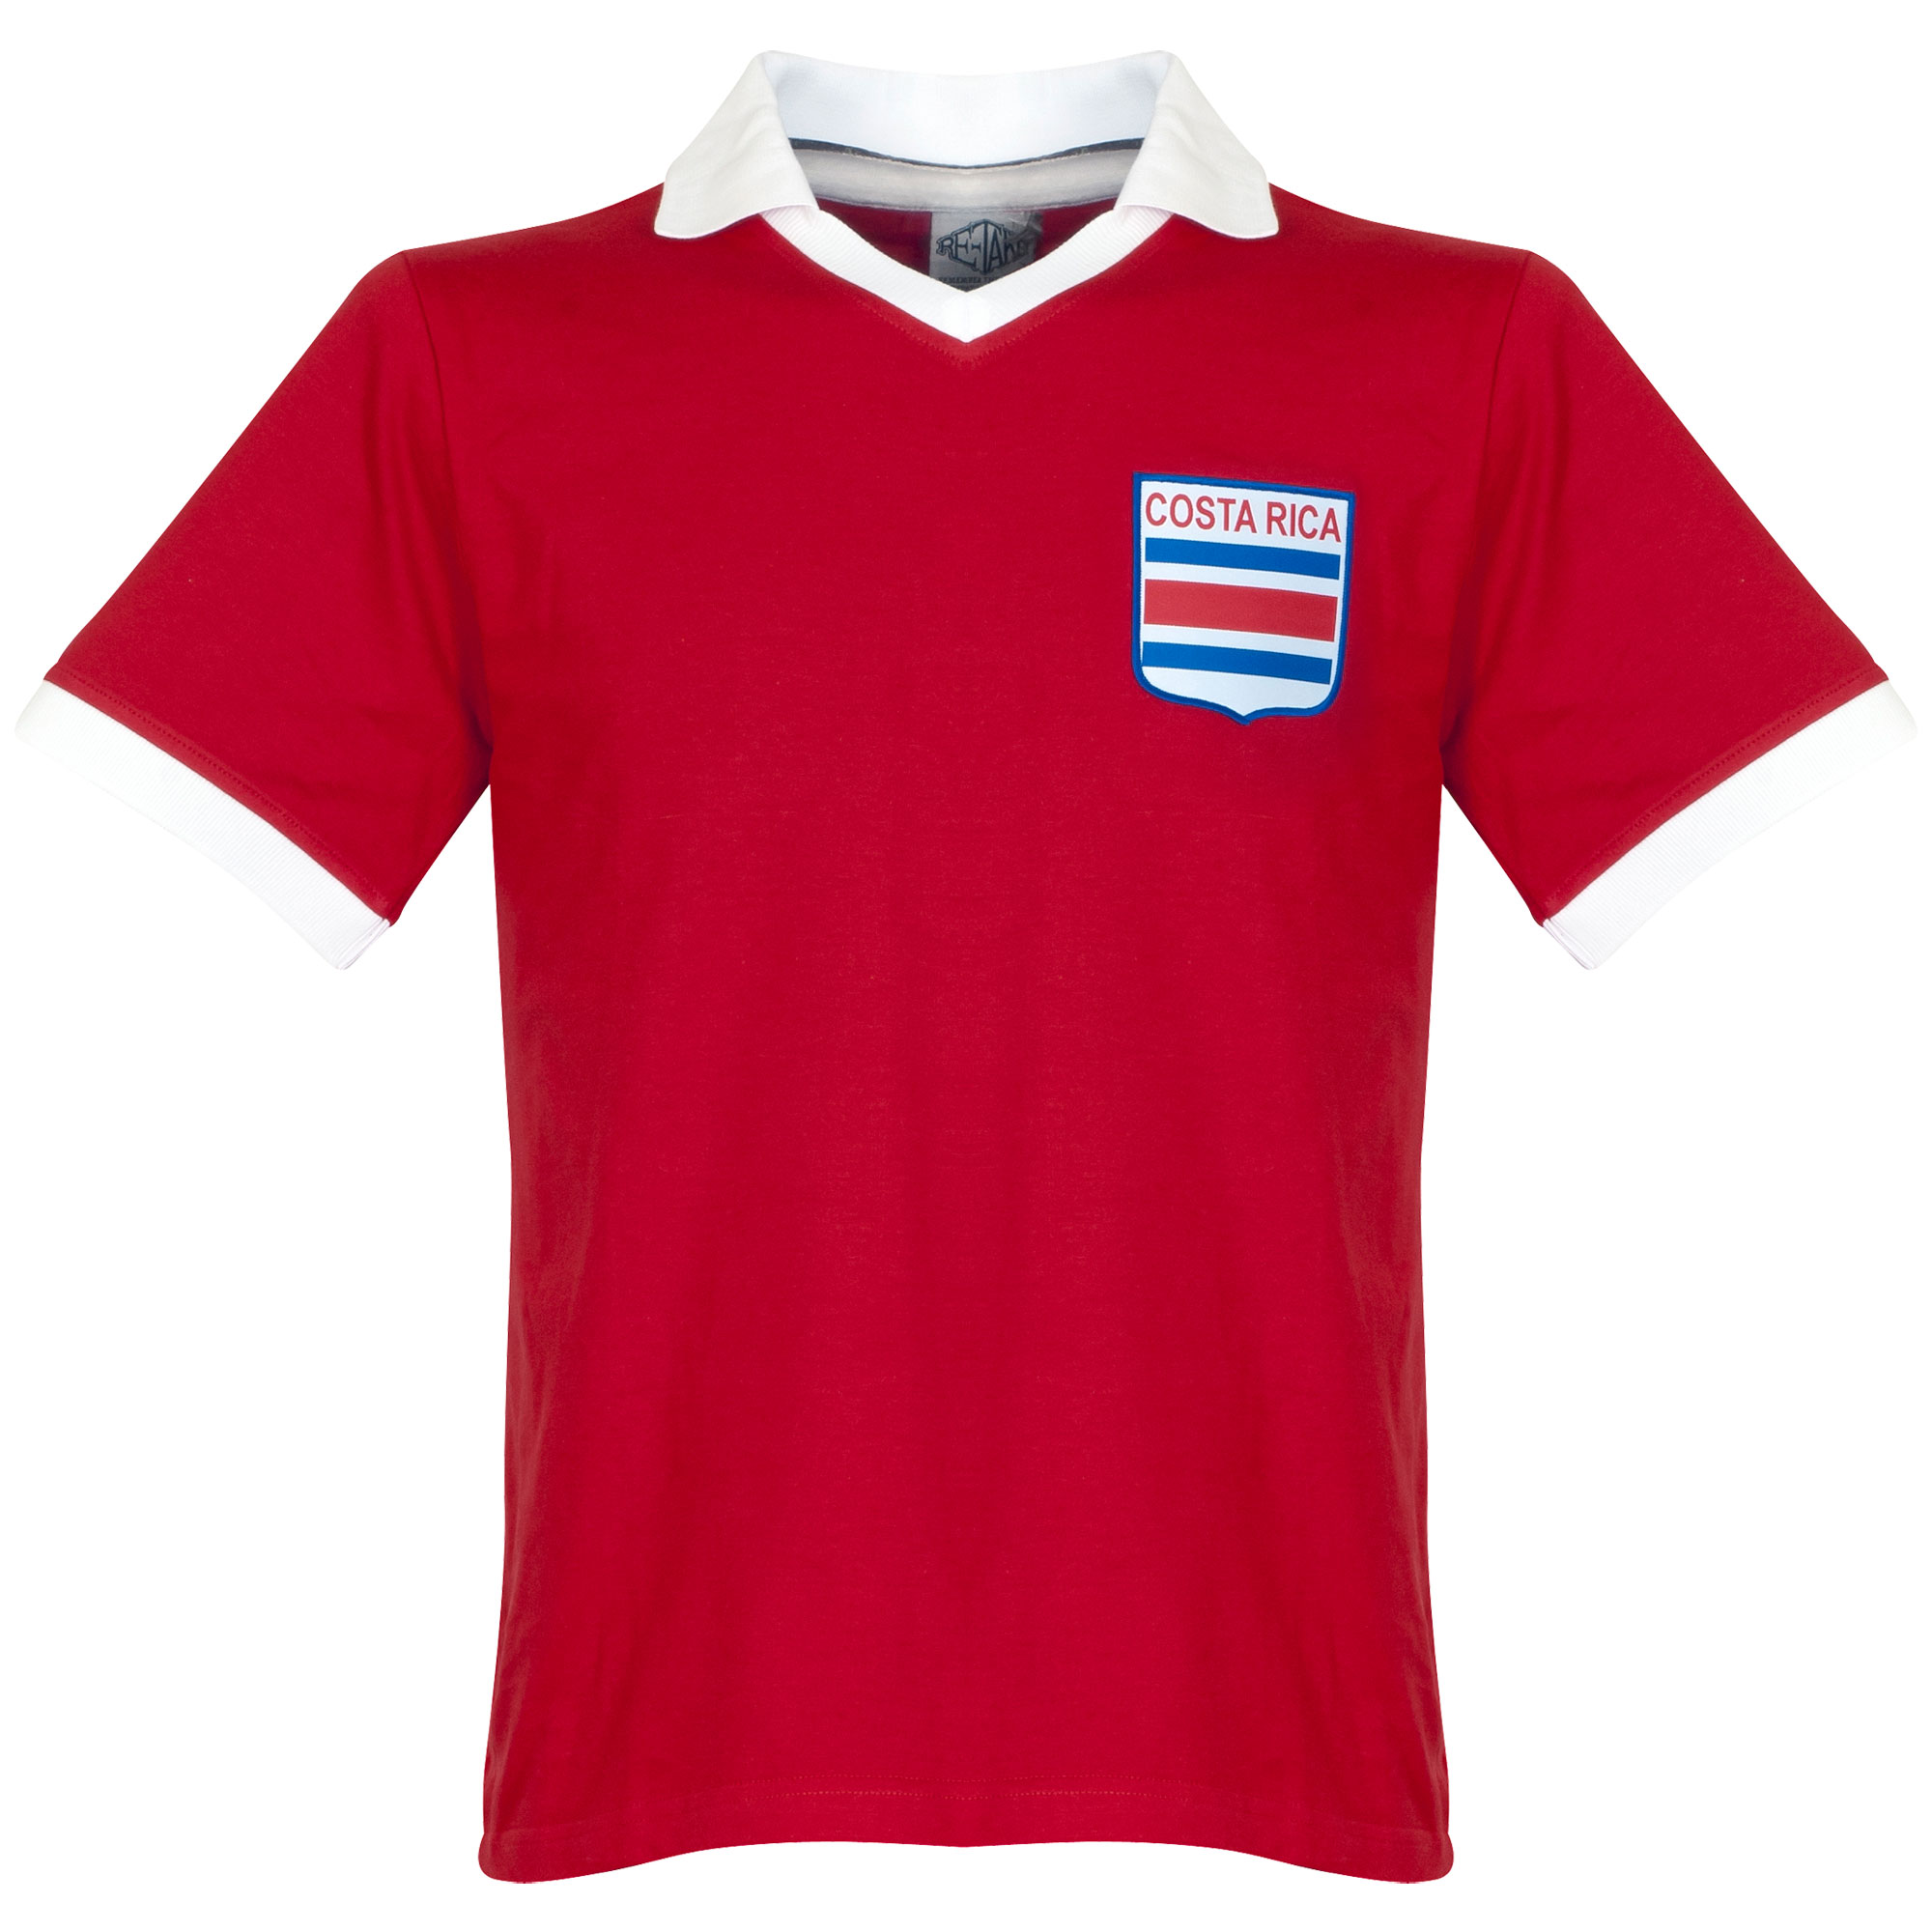 Retake Costa Rica Home Retro Shirt - S